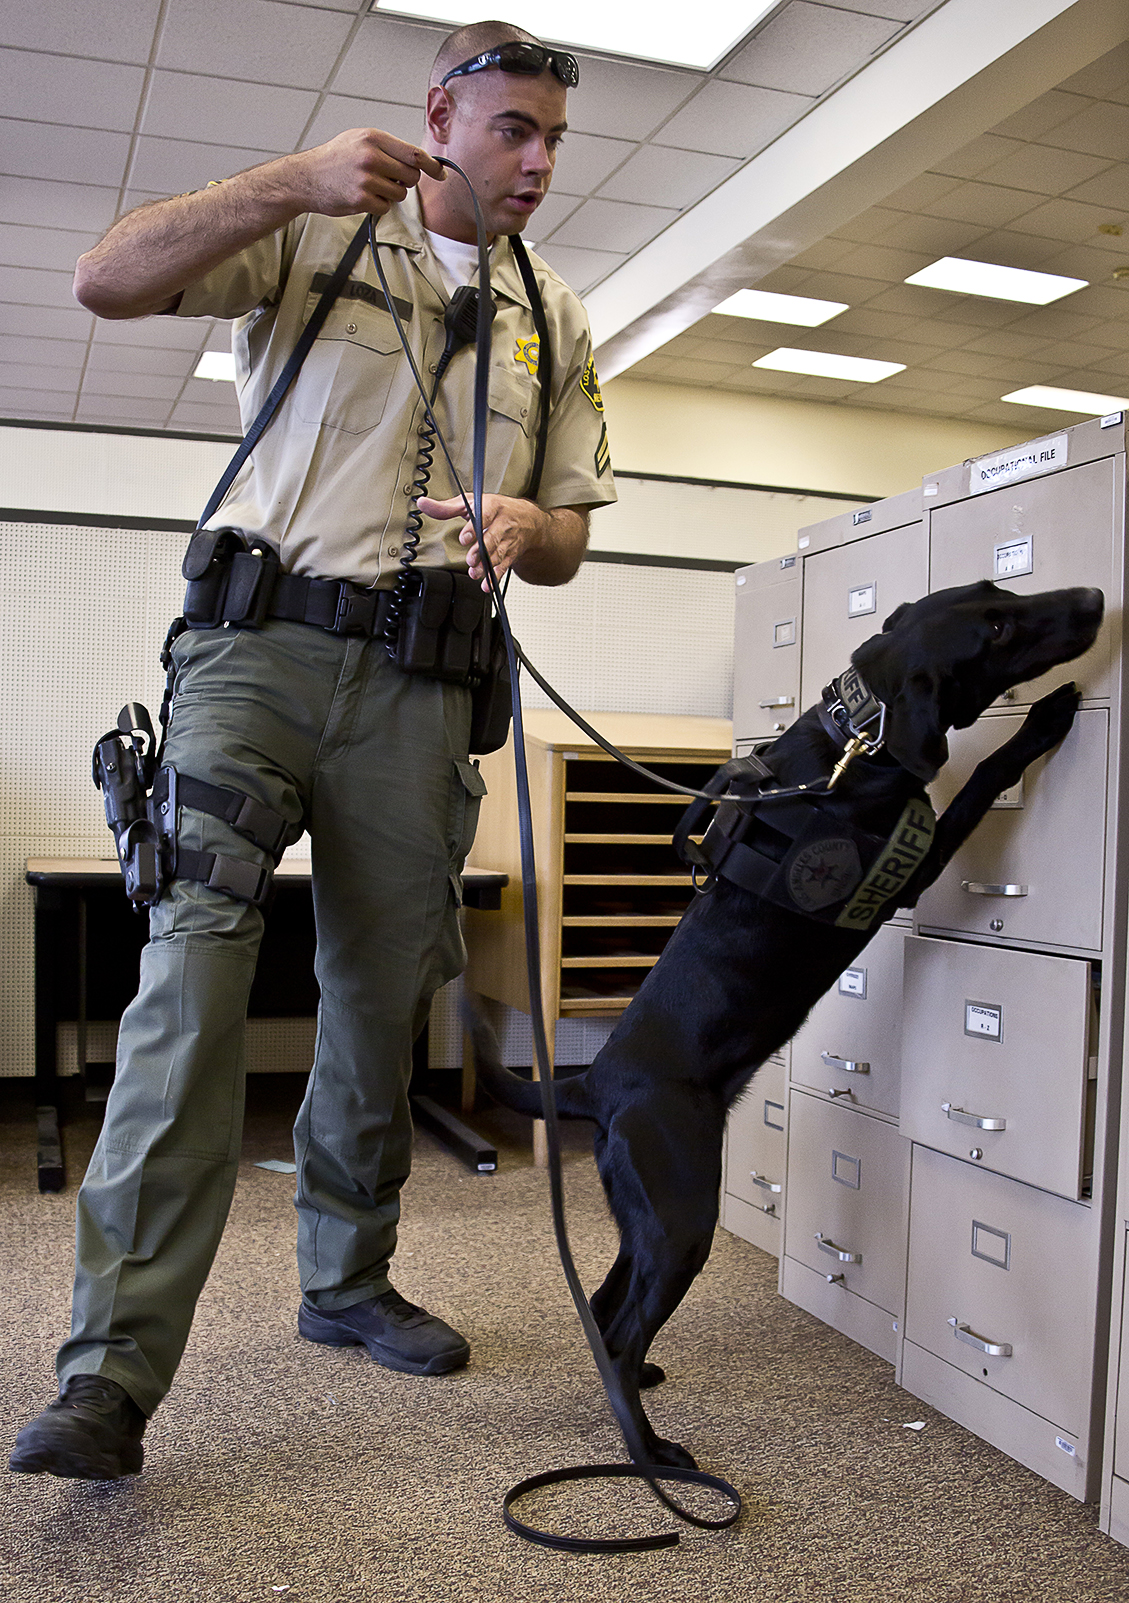 PHOTO SLIDESHOW: LA County Sheriff's Department officers train drug- and bomb-sniffing dogs in old library